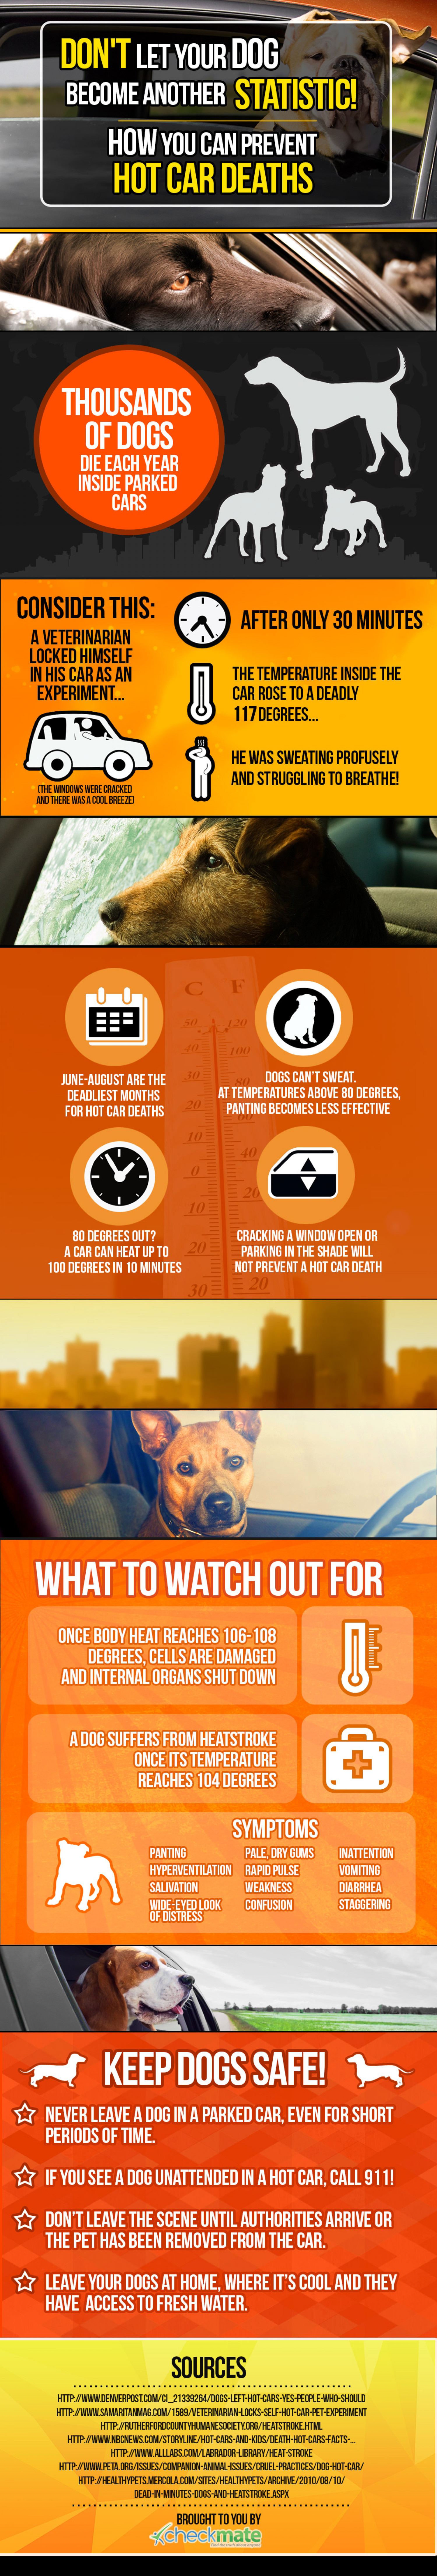 Don't Let You Dog Become Another Statistic Infographic